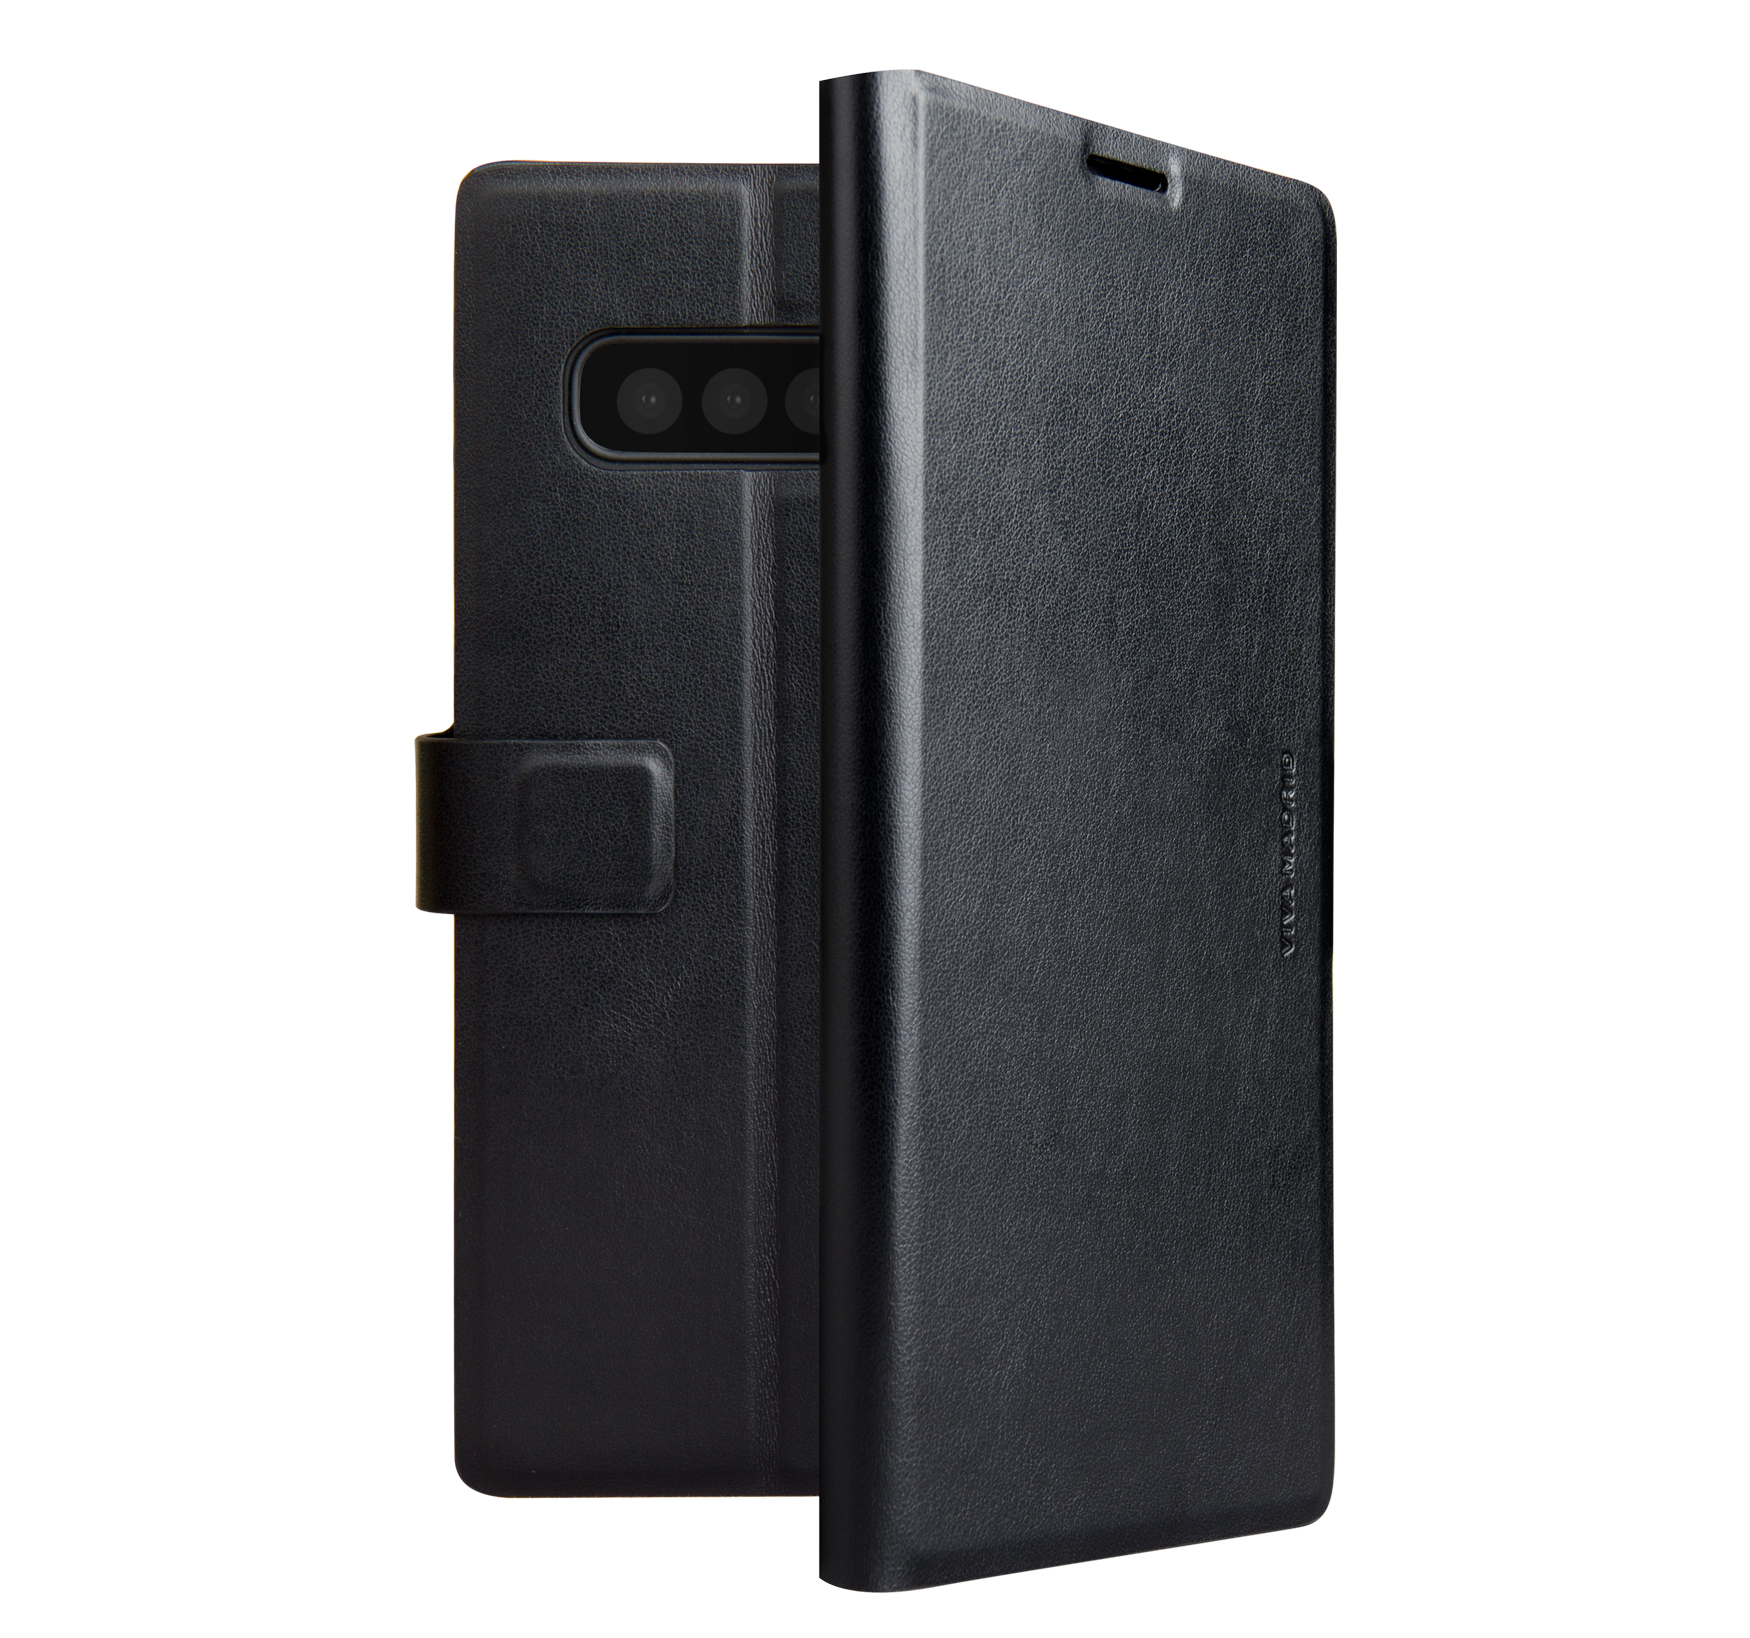 Viva Madrid Finura Cierre Folio Case for Samsung Galaxy S10 Plus - Black